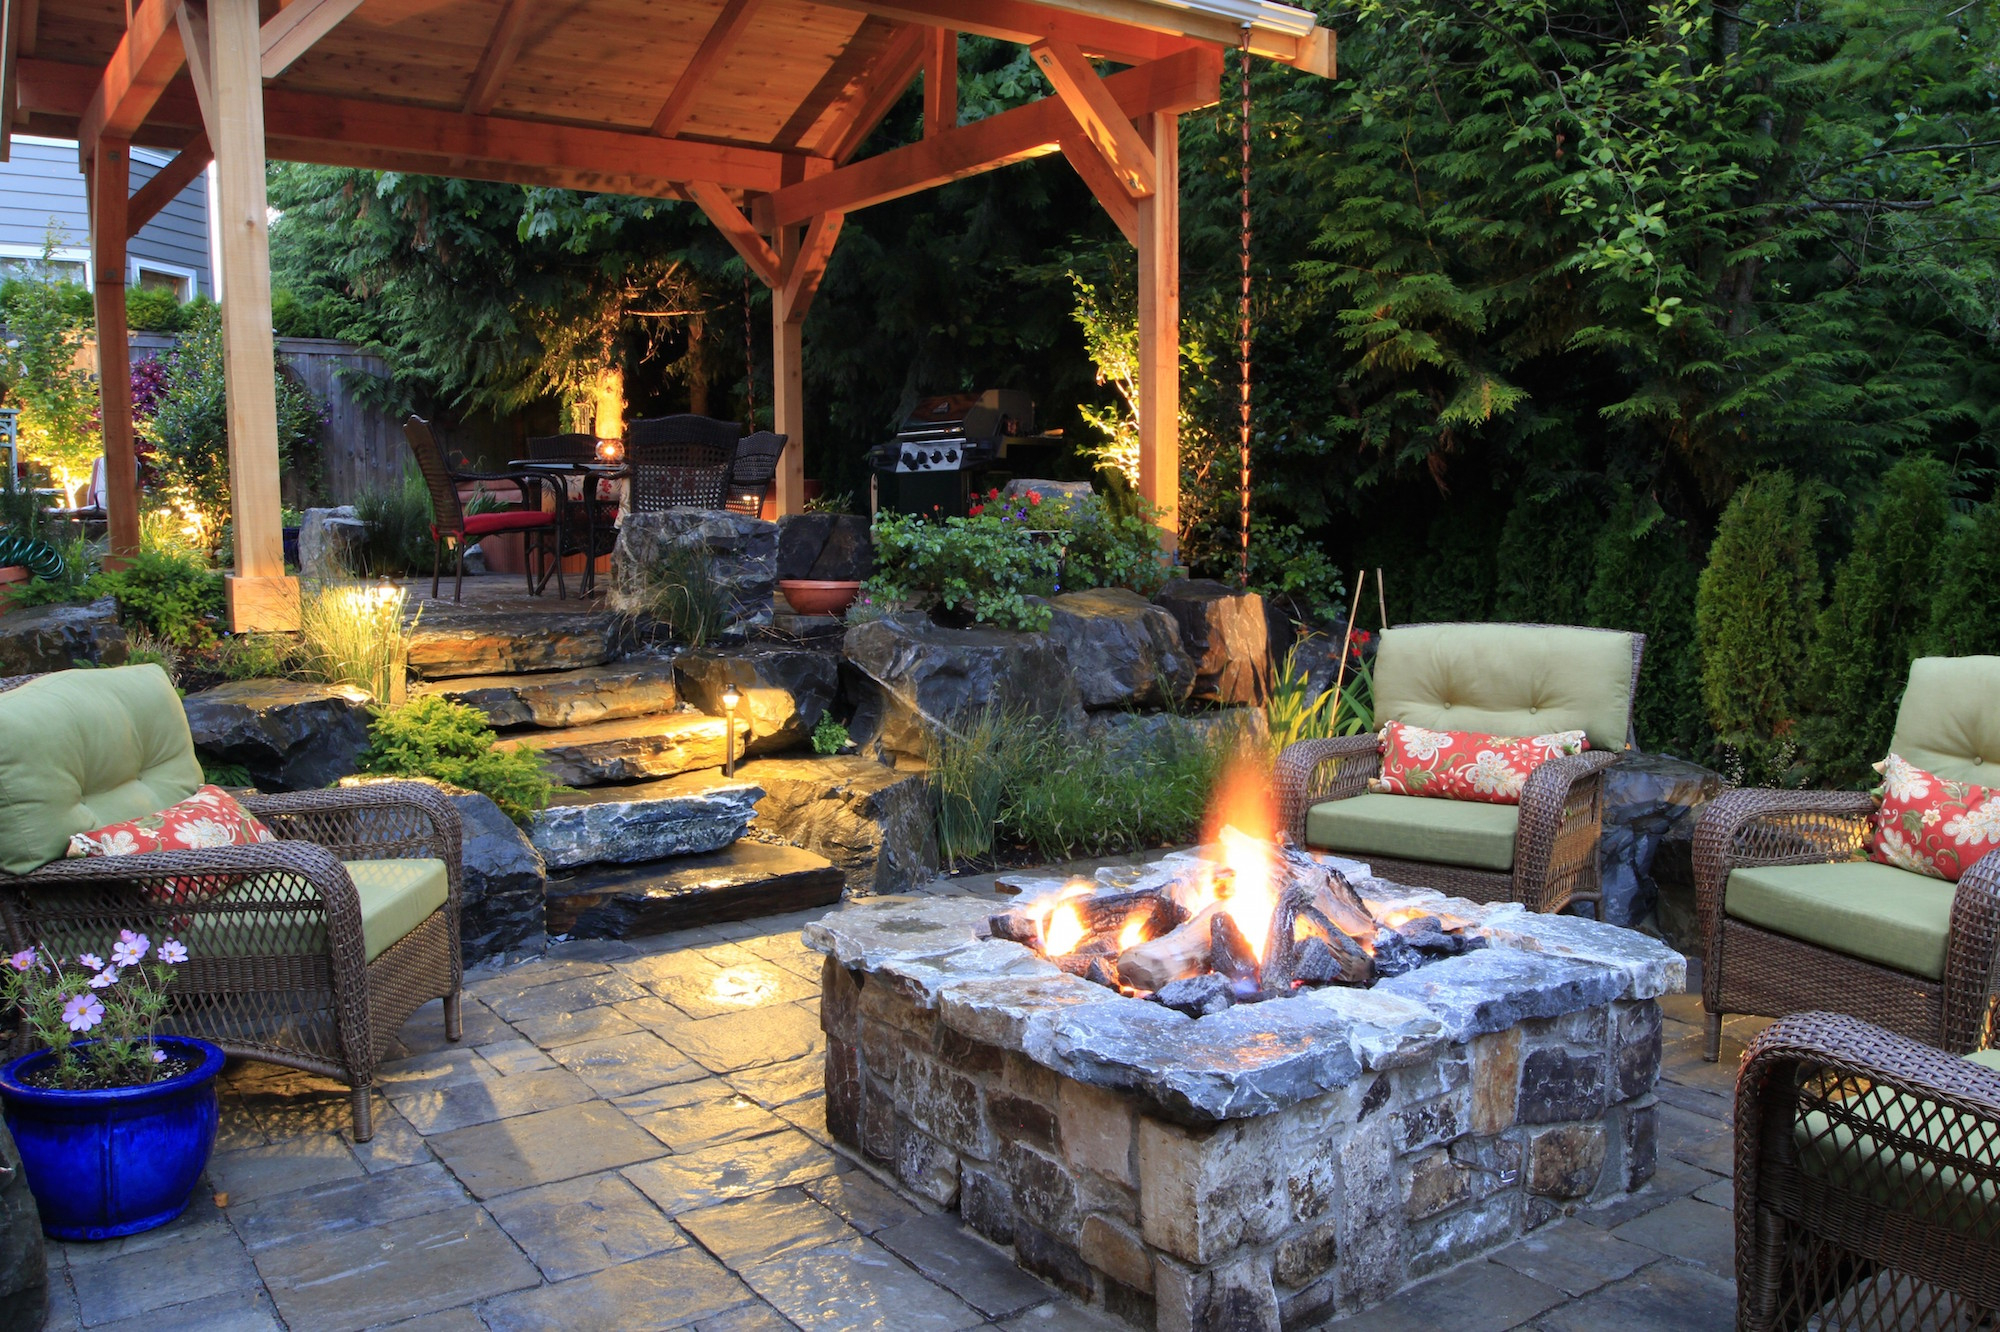 Inspirational 15 Fire Pit Ideas To Keep You Cozy Year Round - Porch Advice in Backyard Landscaping Ideas With Fire Pit